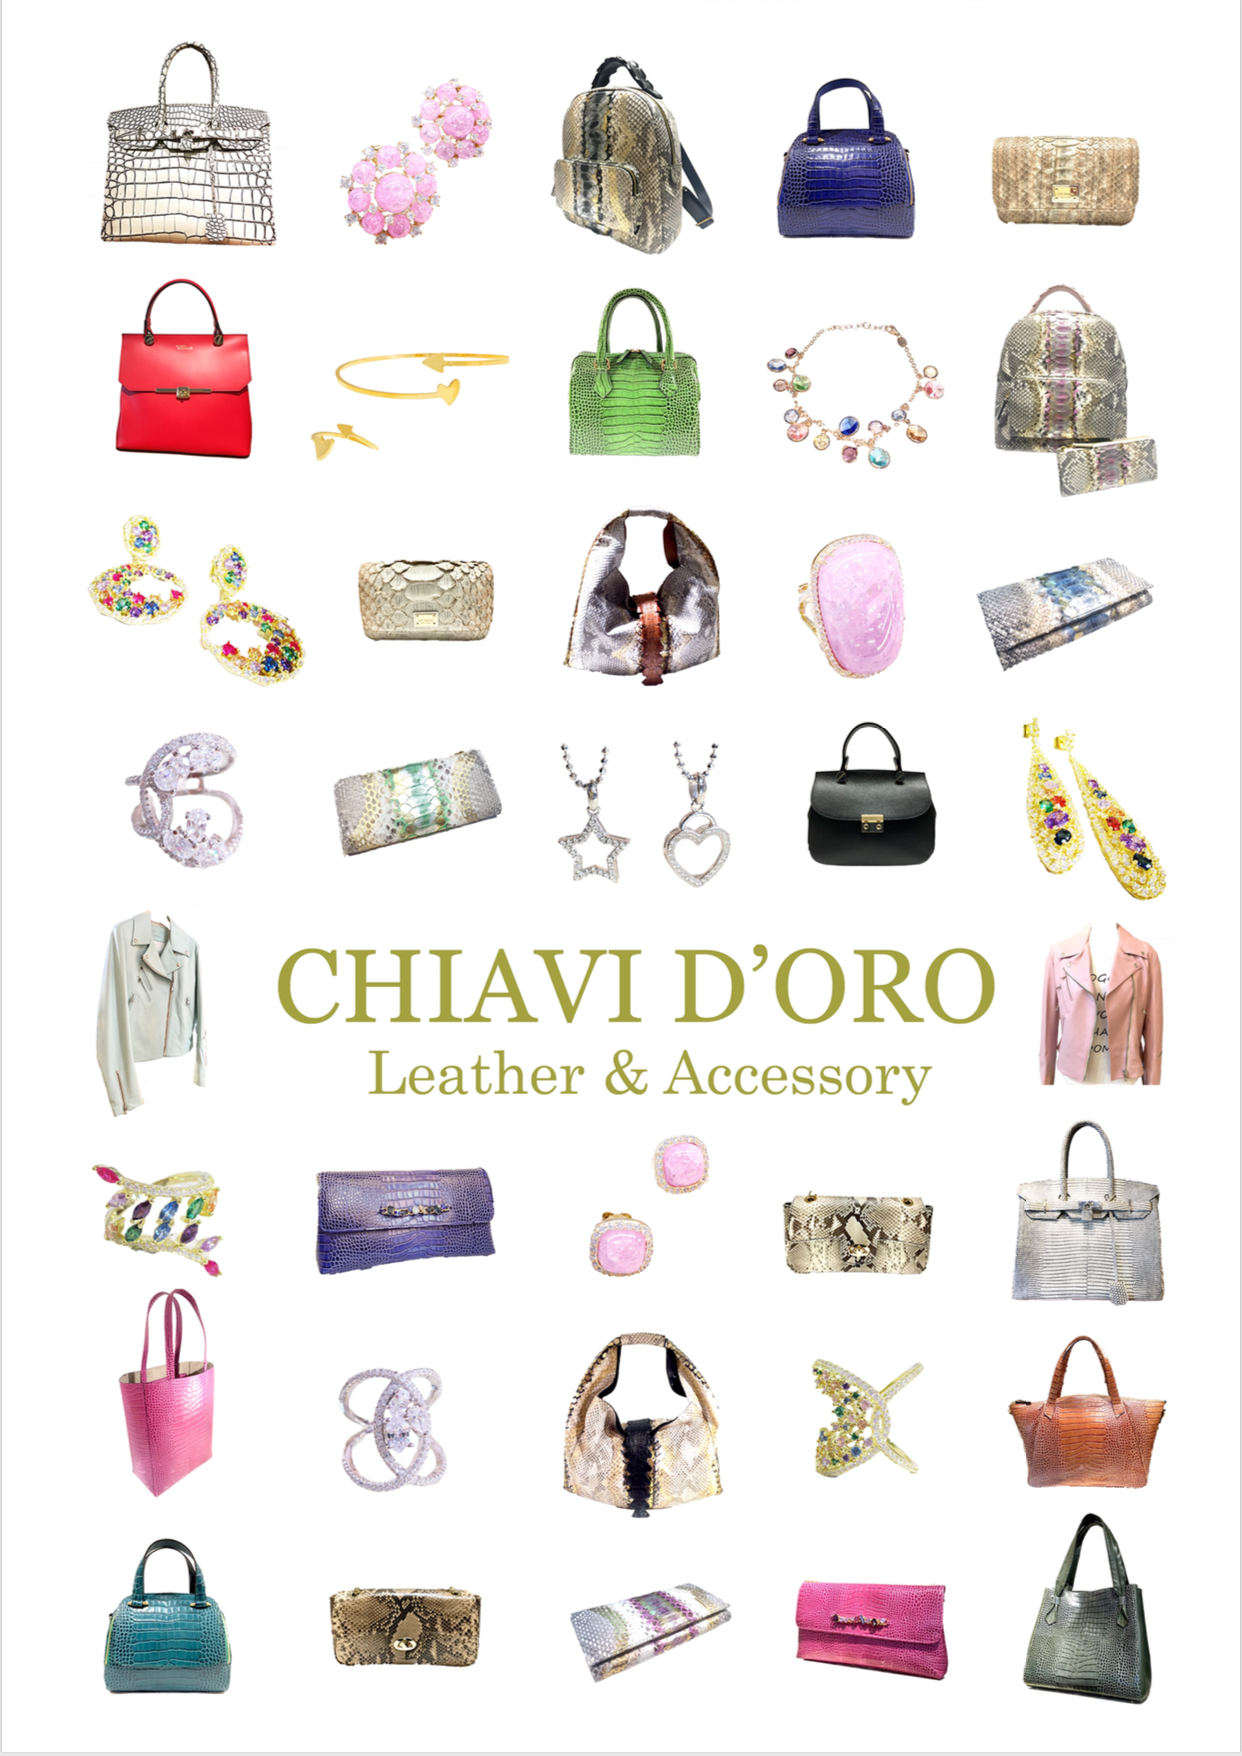 CHIAVI D'ORO official